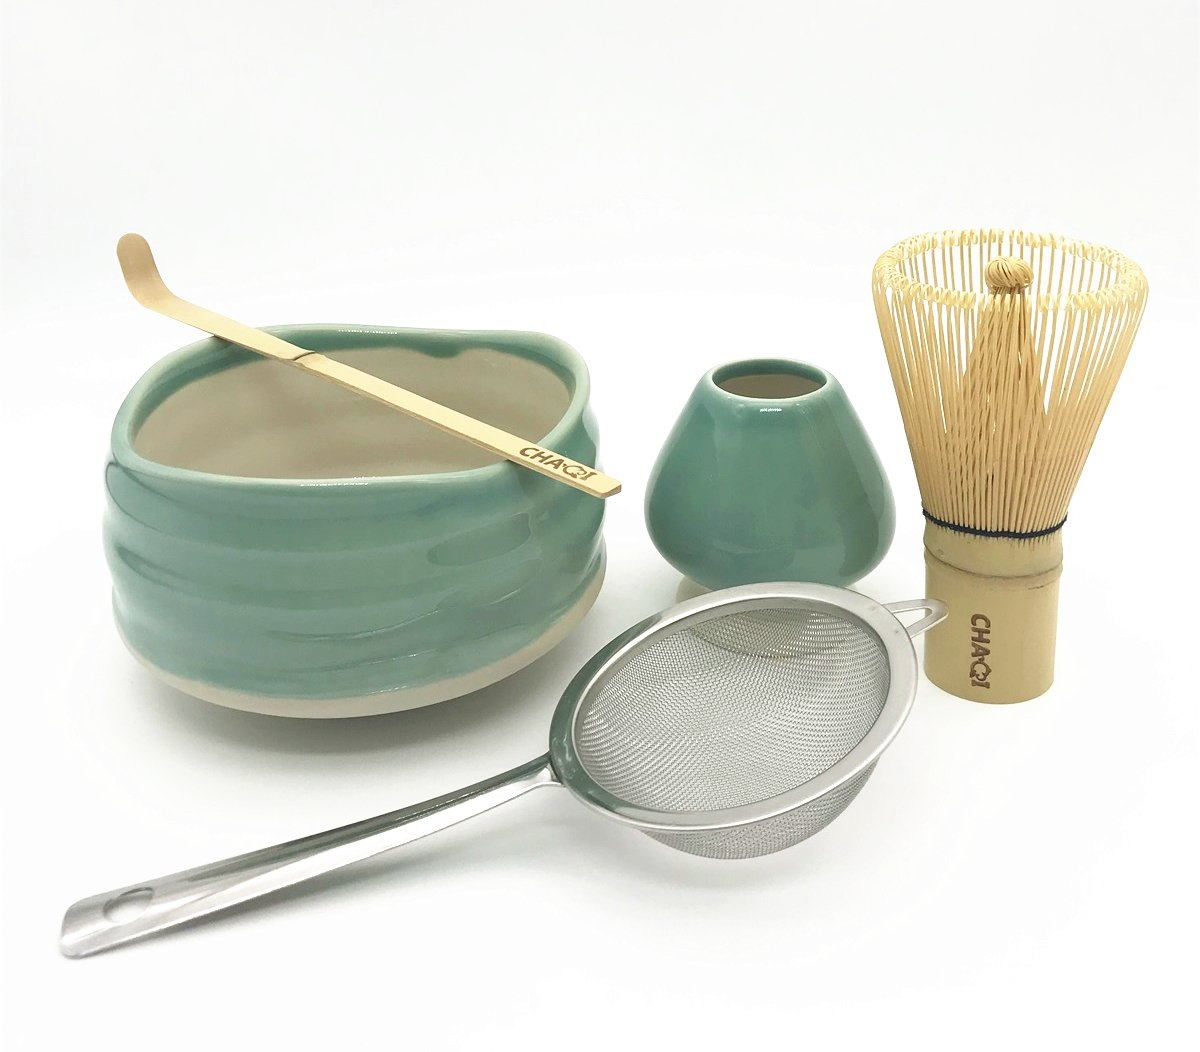 Home Soul Matcha Accessories Kit Include 5 items-100 Prongs Bamboo Whisk Chasen,Bamboo Scoop,Stainless Steel Tea Filter and Ceramic Matcha Bowl & Whisk Holder (Green) by Home Soul